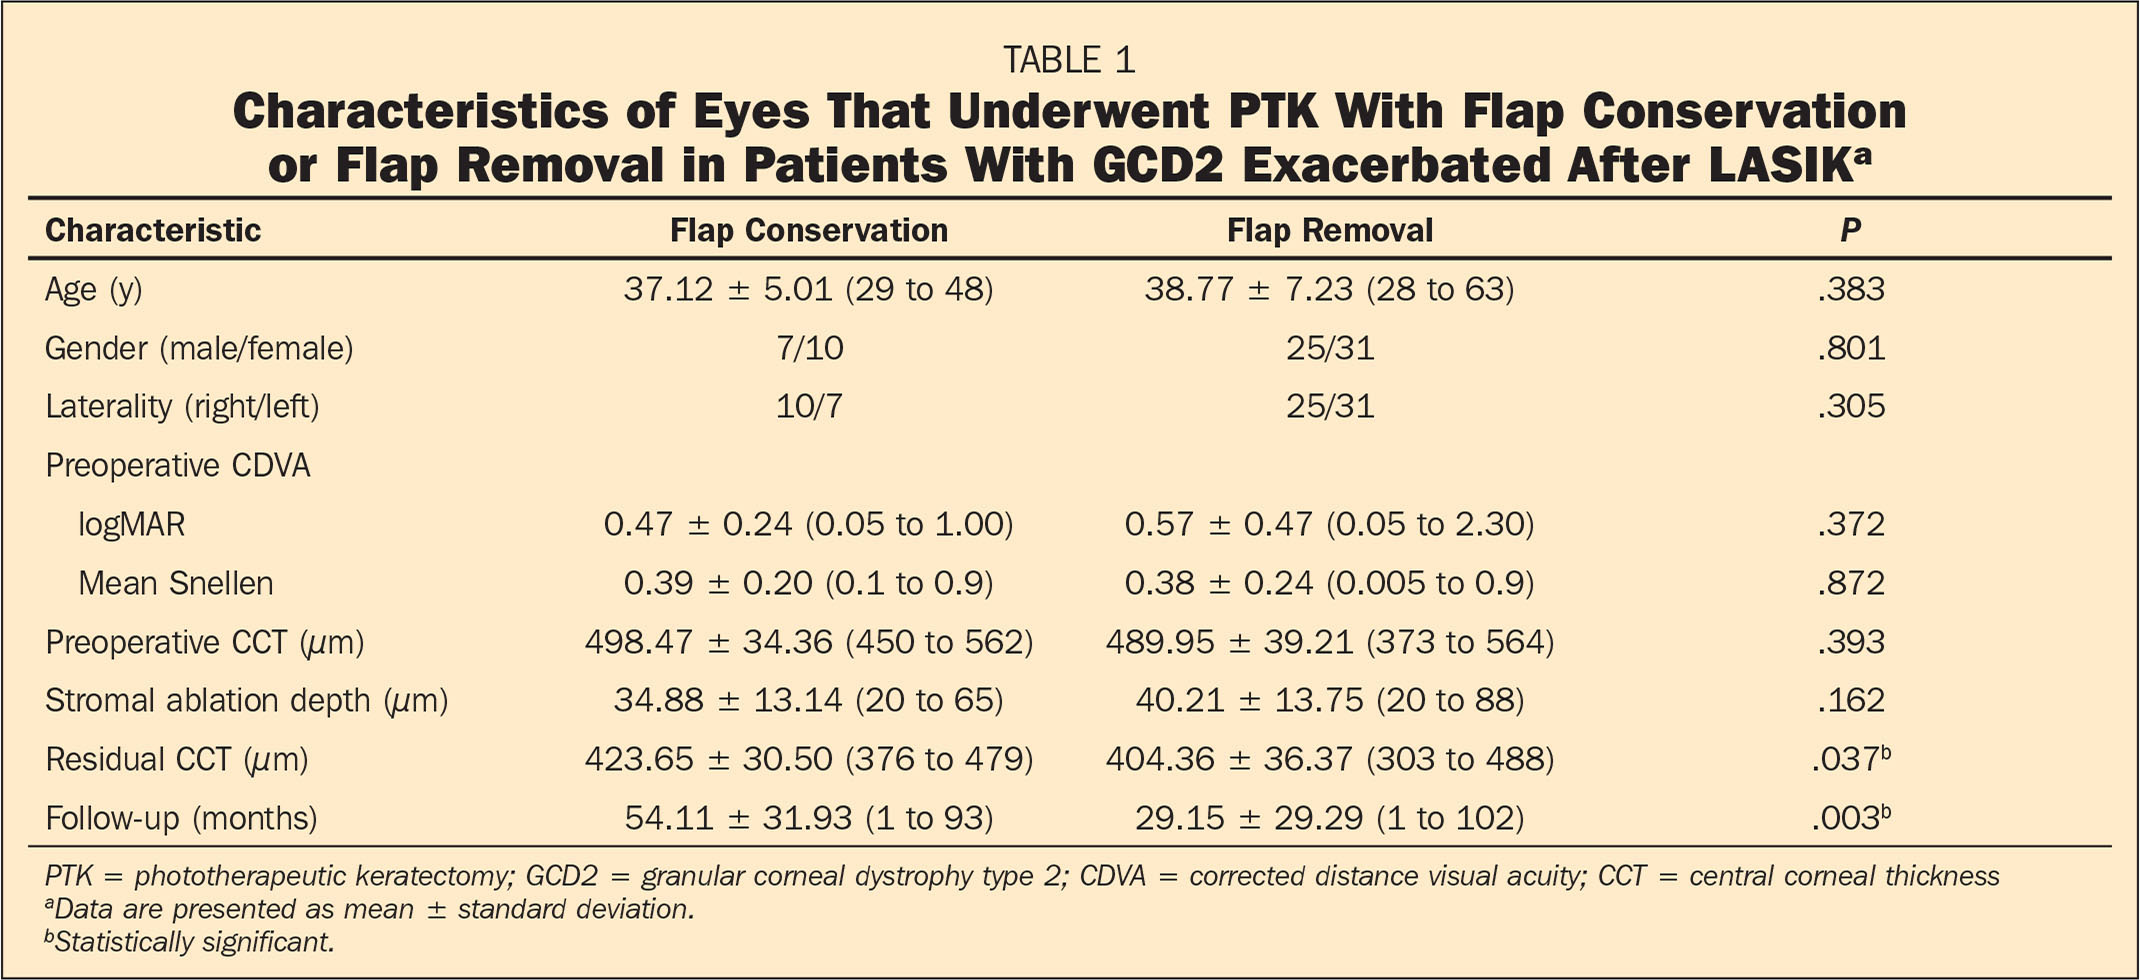 Characteristics of Eyes That Underwent PTK With Flap Conservation or Flap Removal in Patients With GCD2 Exacerbated After LASIKa